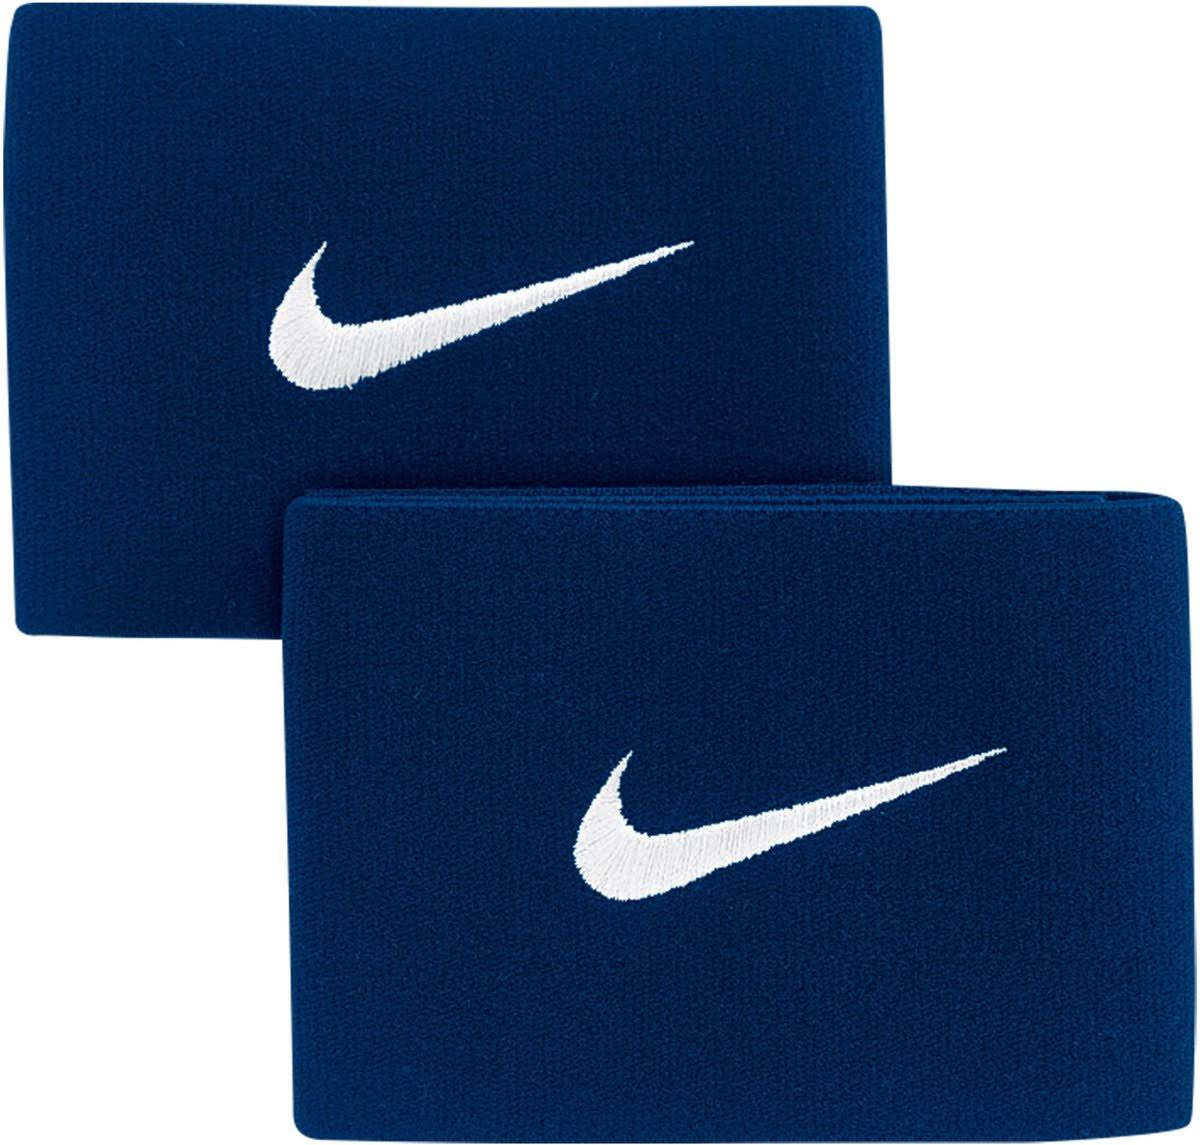 Nike Guard Stay 2x Stretch Football Sport Shin Pad Holder - Navy and White